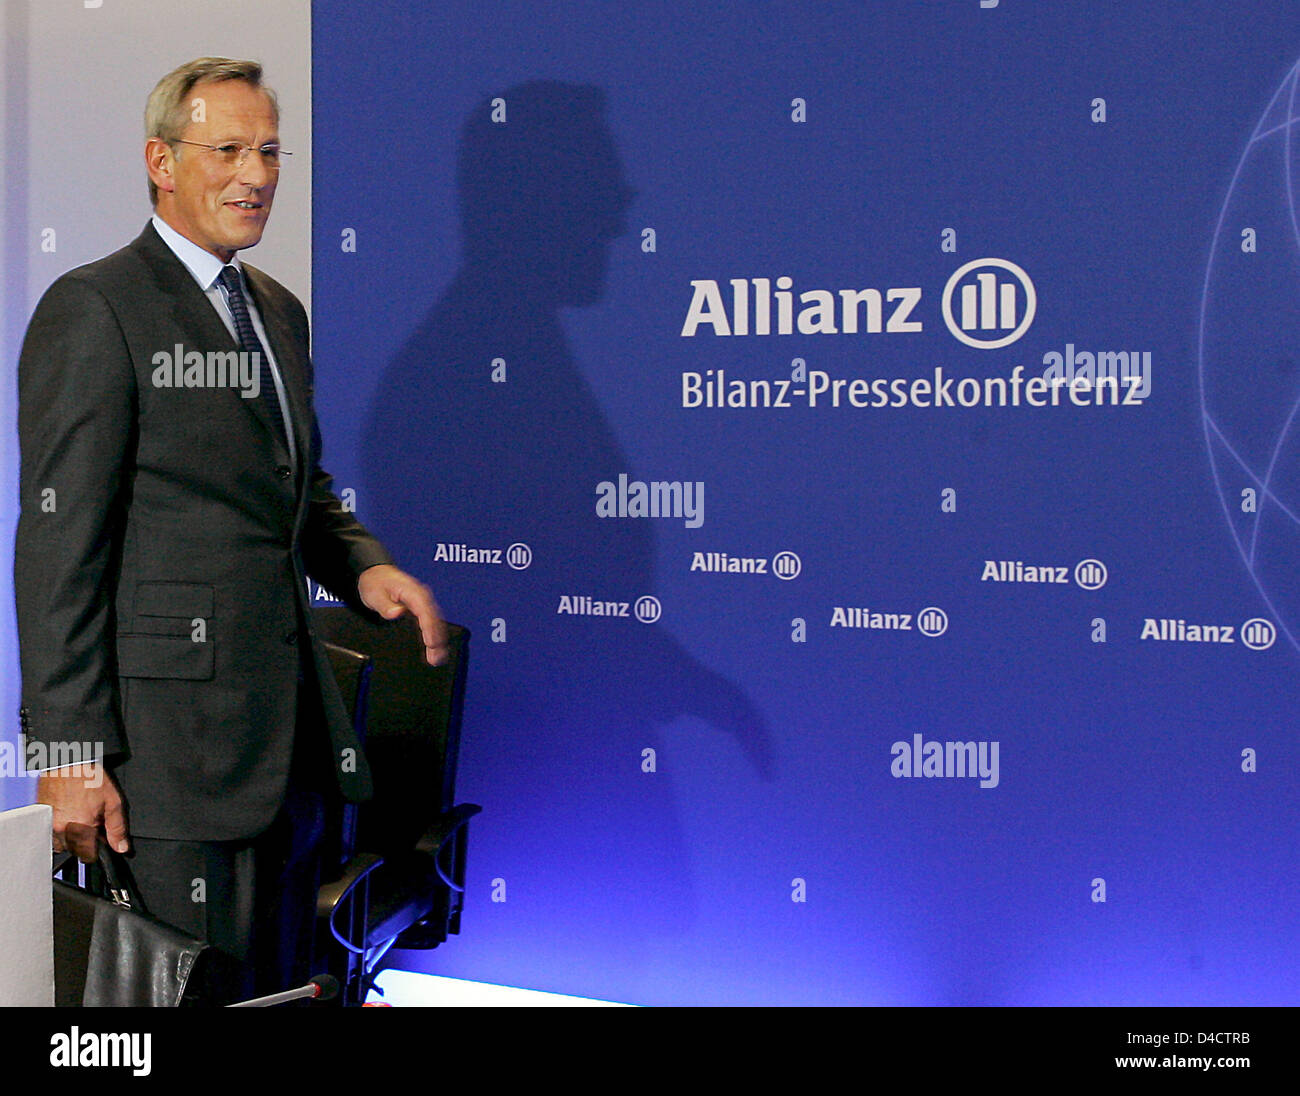 Allianz SE CEO Michael Diekmann arrives for the group's balance press conference in Munich, Germany, 21 February 2008. Europe's biggest insurer Allianz prefers to be cautious for the coming financial year despite booking a record profit in the past year with its economic turmoils on the financial markets. Having to absorb billions of charges in the course of crisis-hit US housing m Stock Photo